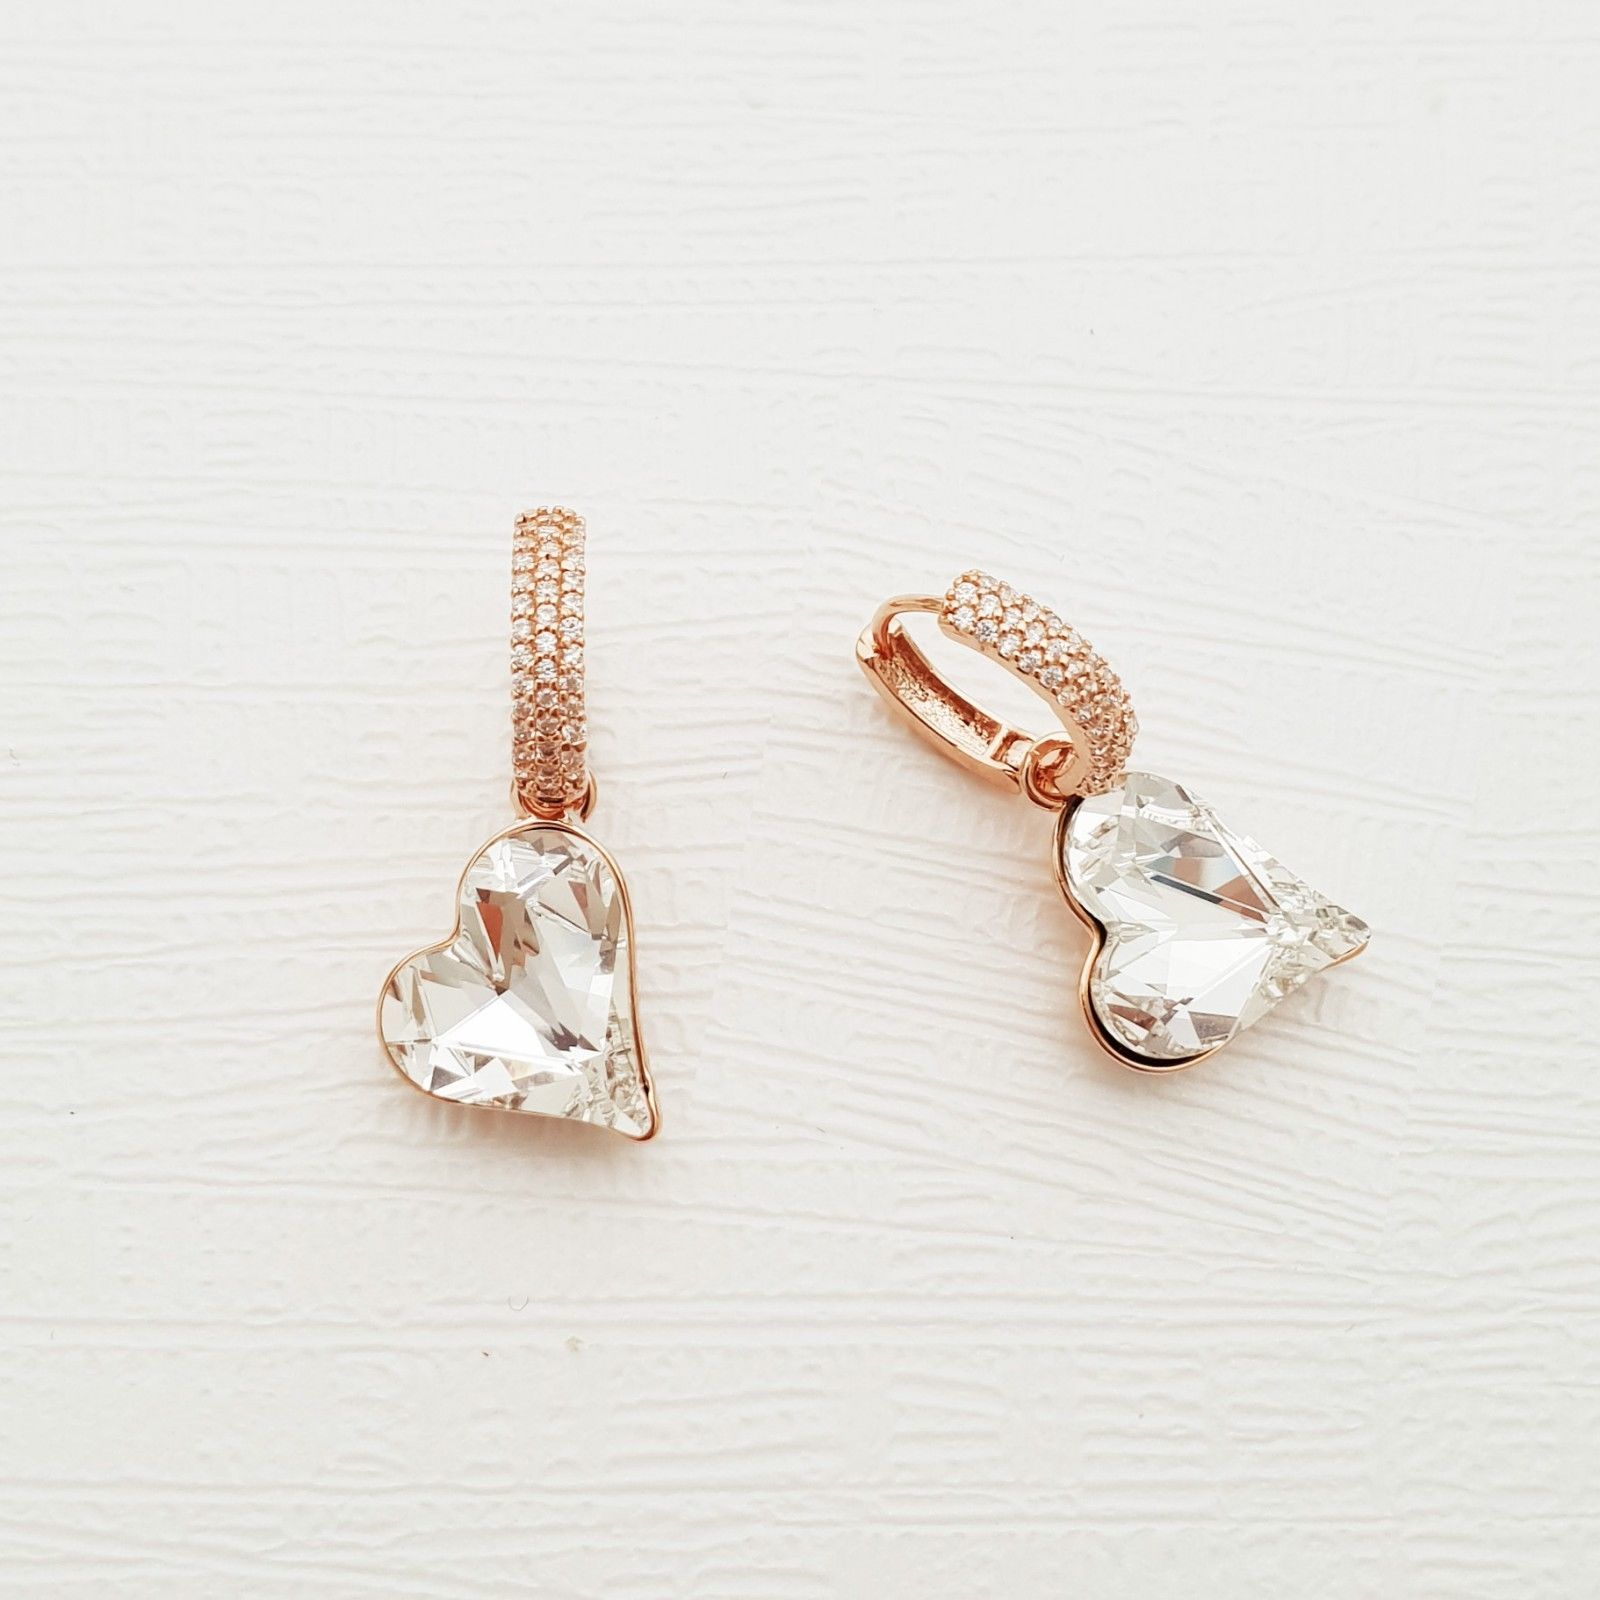 Heart Made With Swarovski Crystal Laverback Dangle Earrings Cubic Zirconia E215 image 4